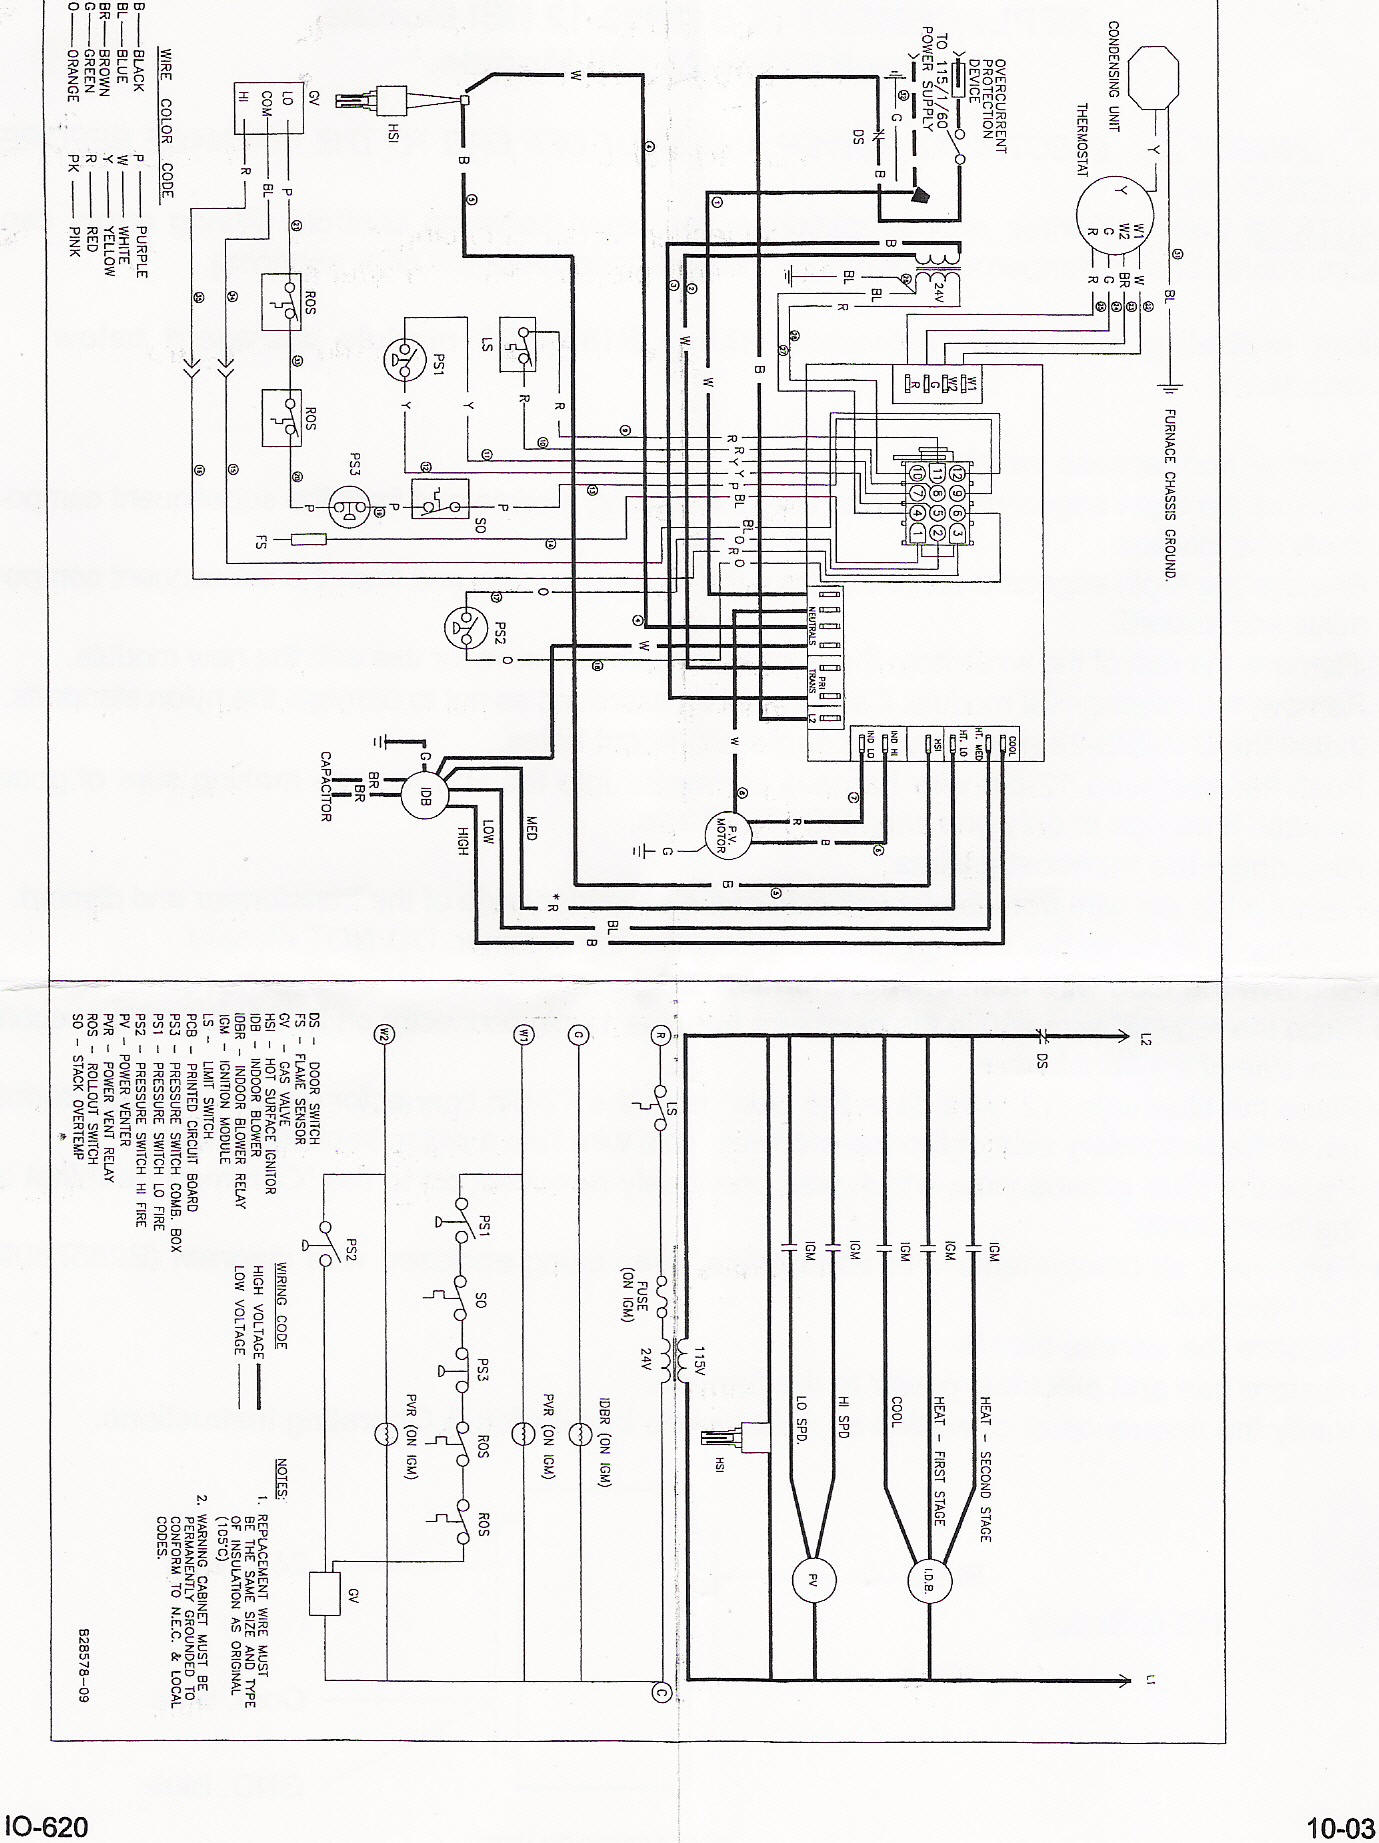 goodma2 instr goodman control board b18099 23 instructions fenwal ignition module wiring diagram at suagrazia.org